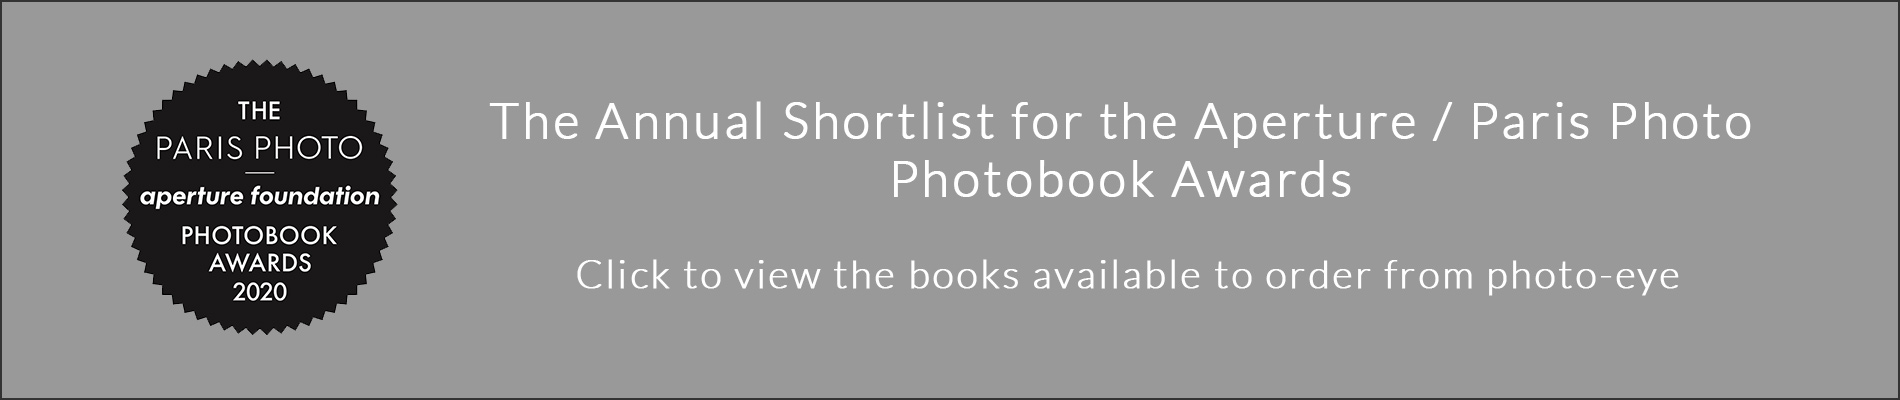 Aperture Shortlist Available From photo-eye